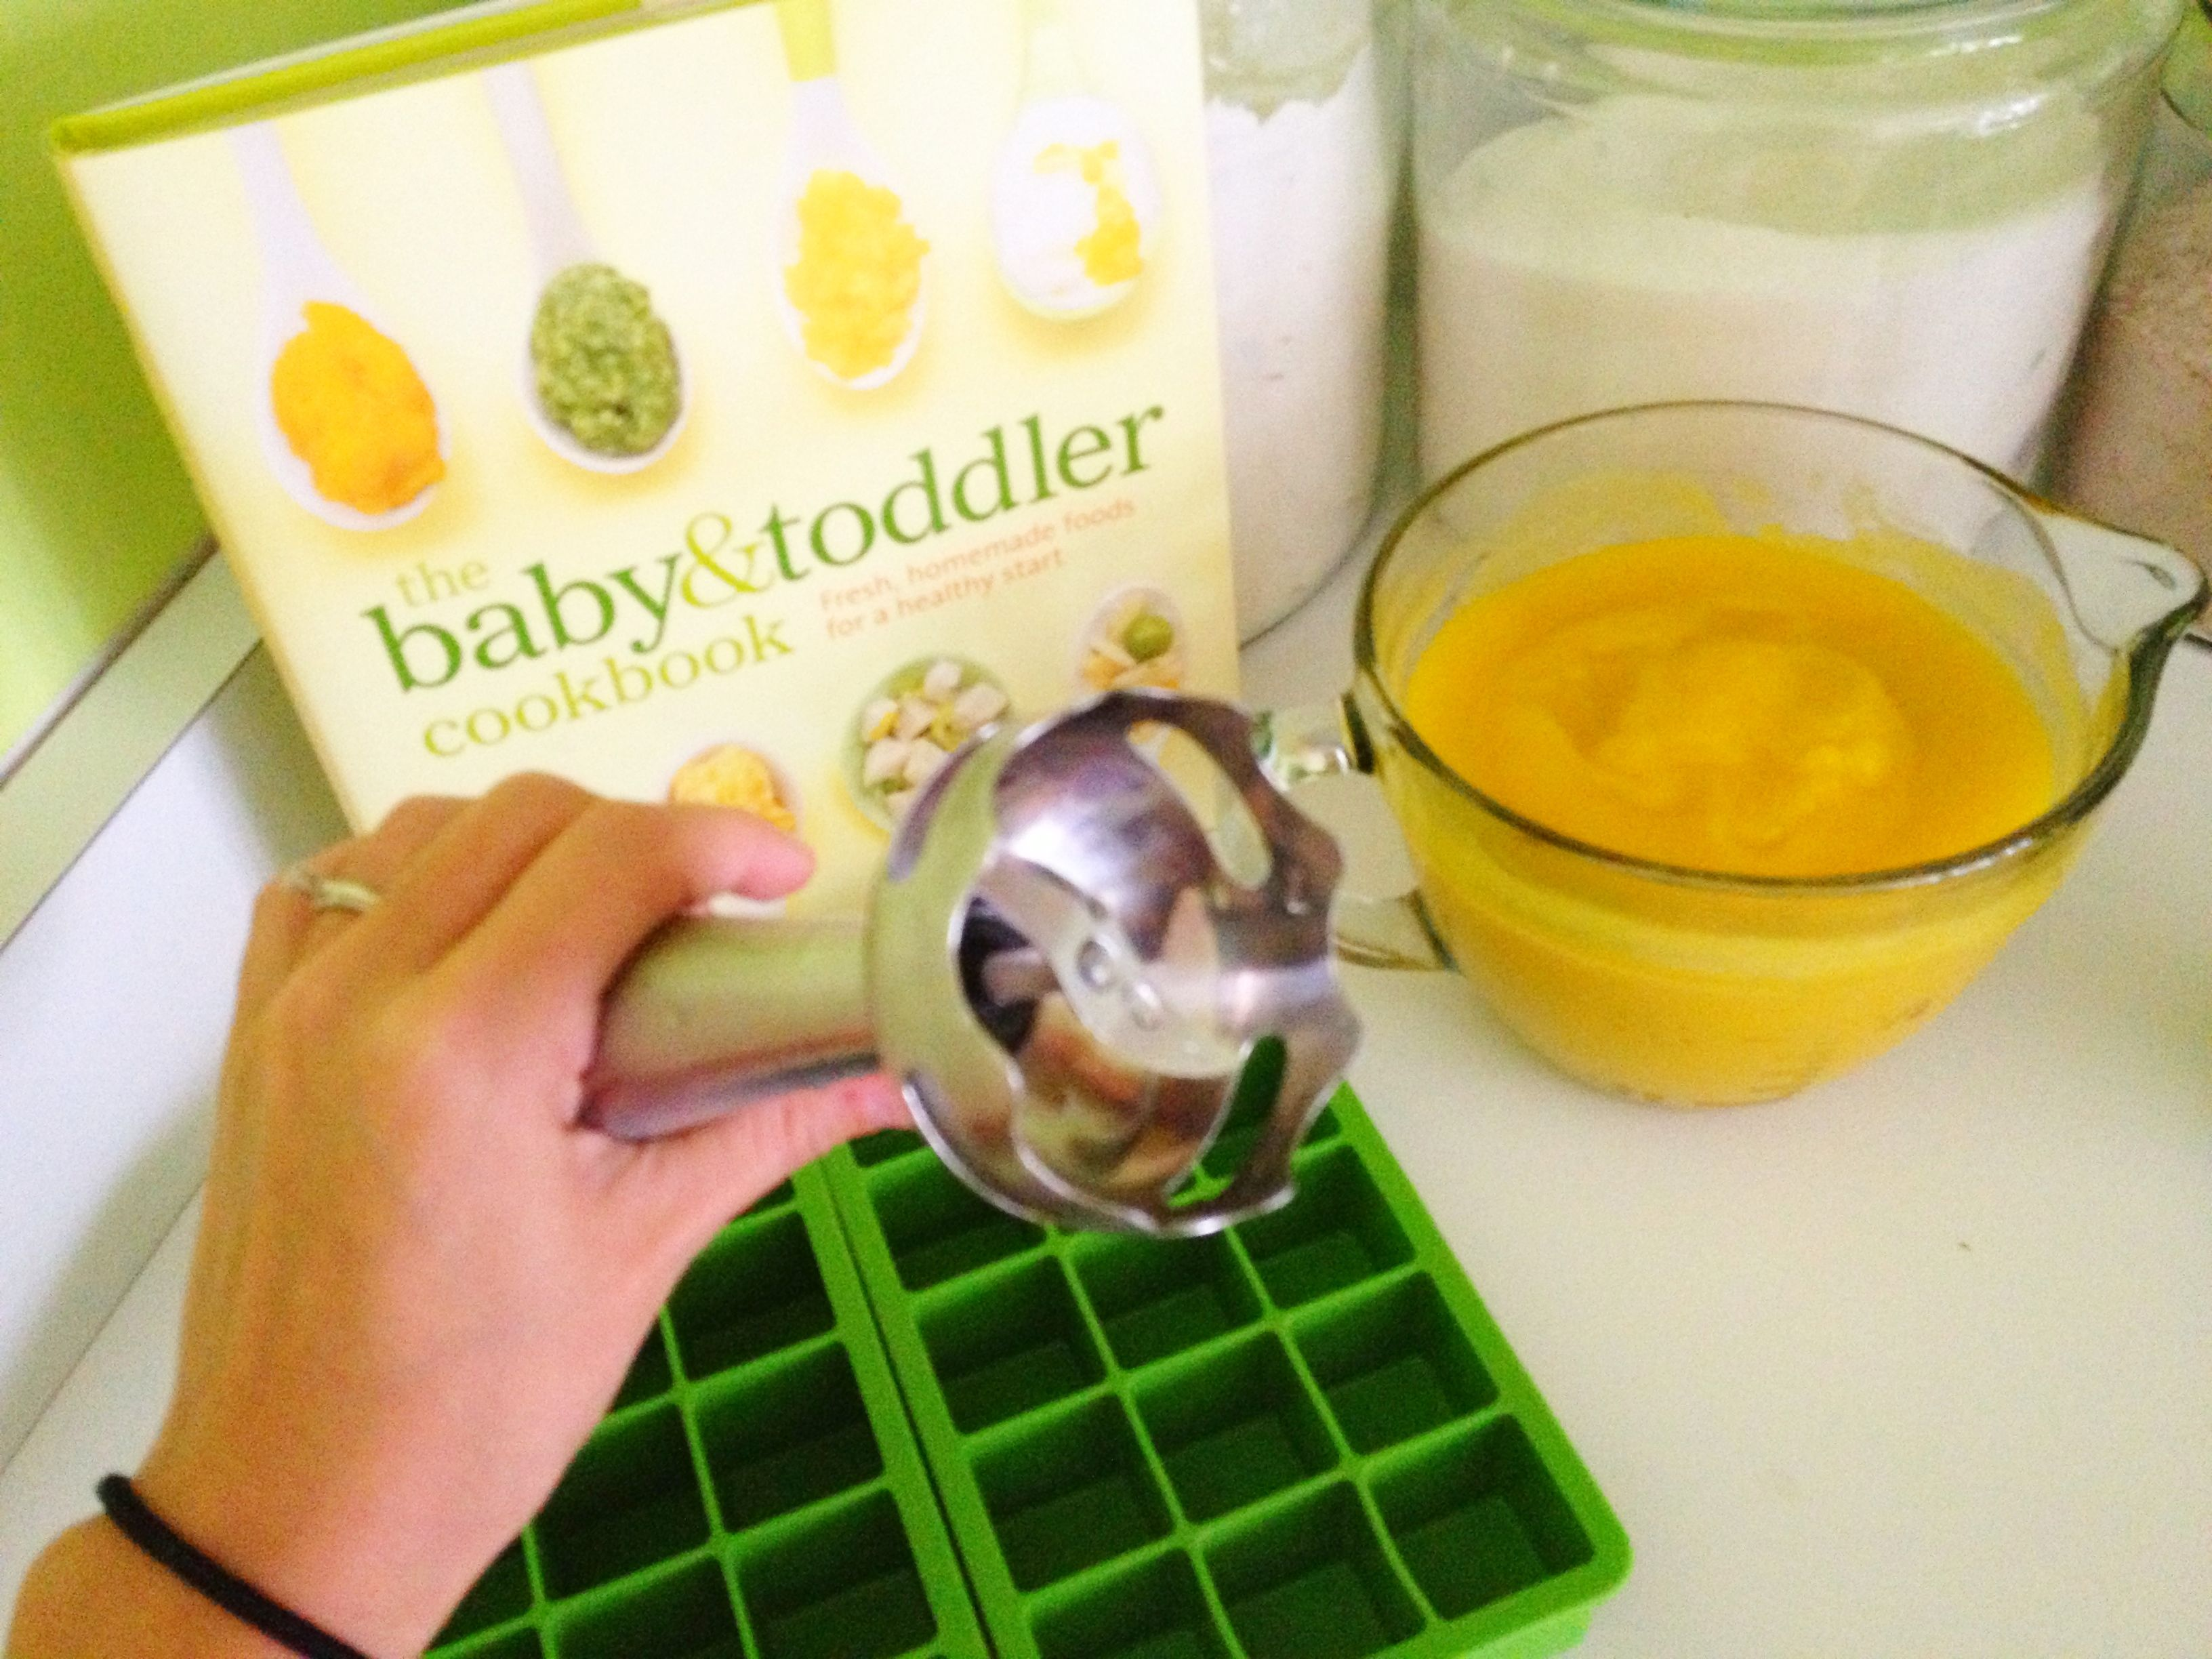 An immersion blender is the best homemade baby food tool! And you can use it for so many other things!